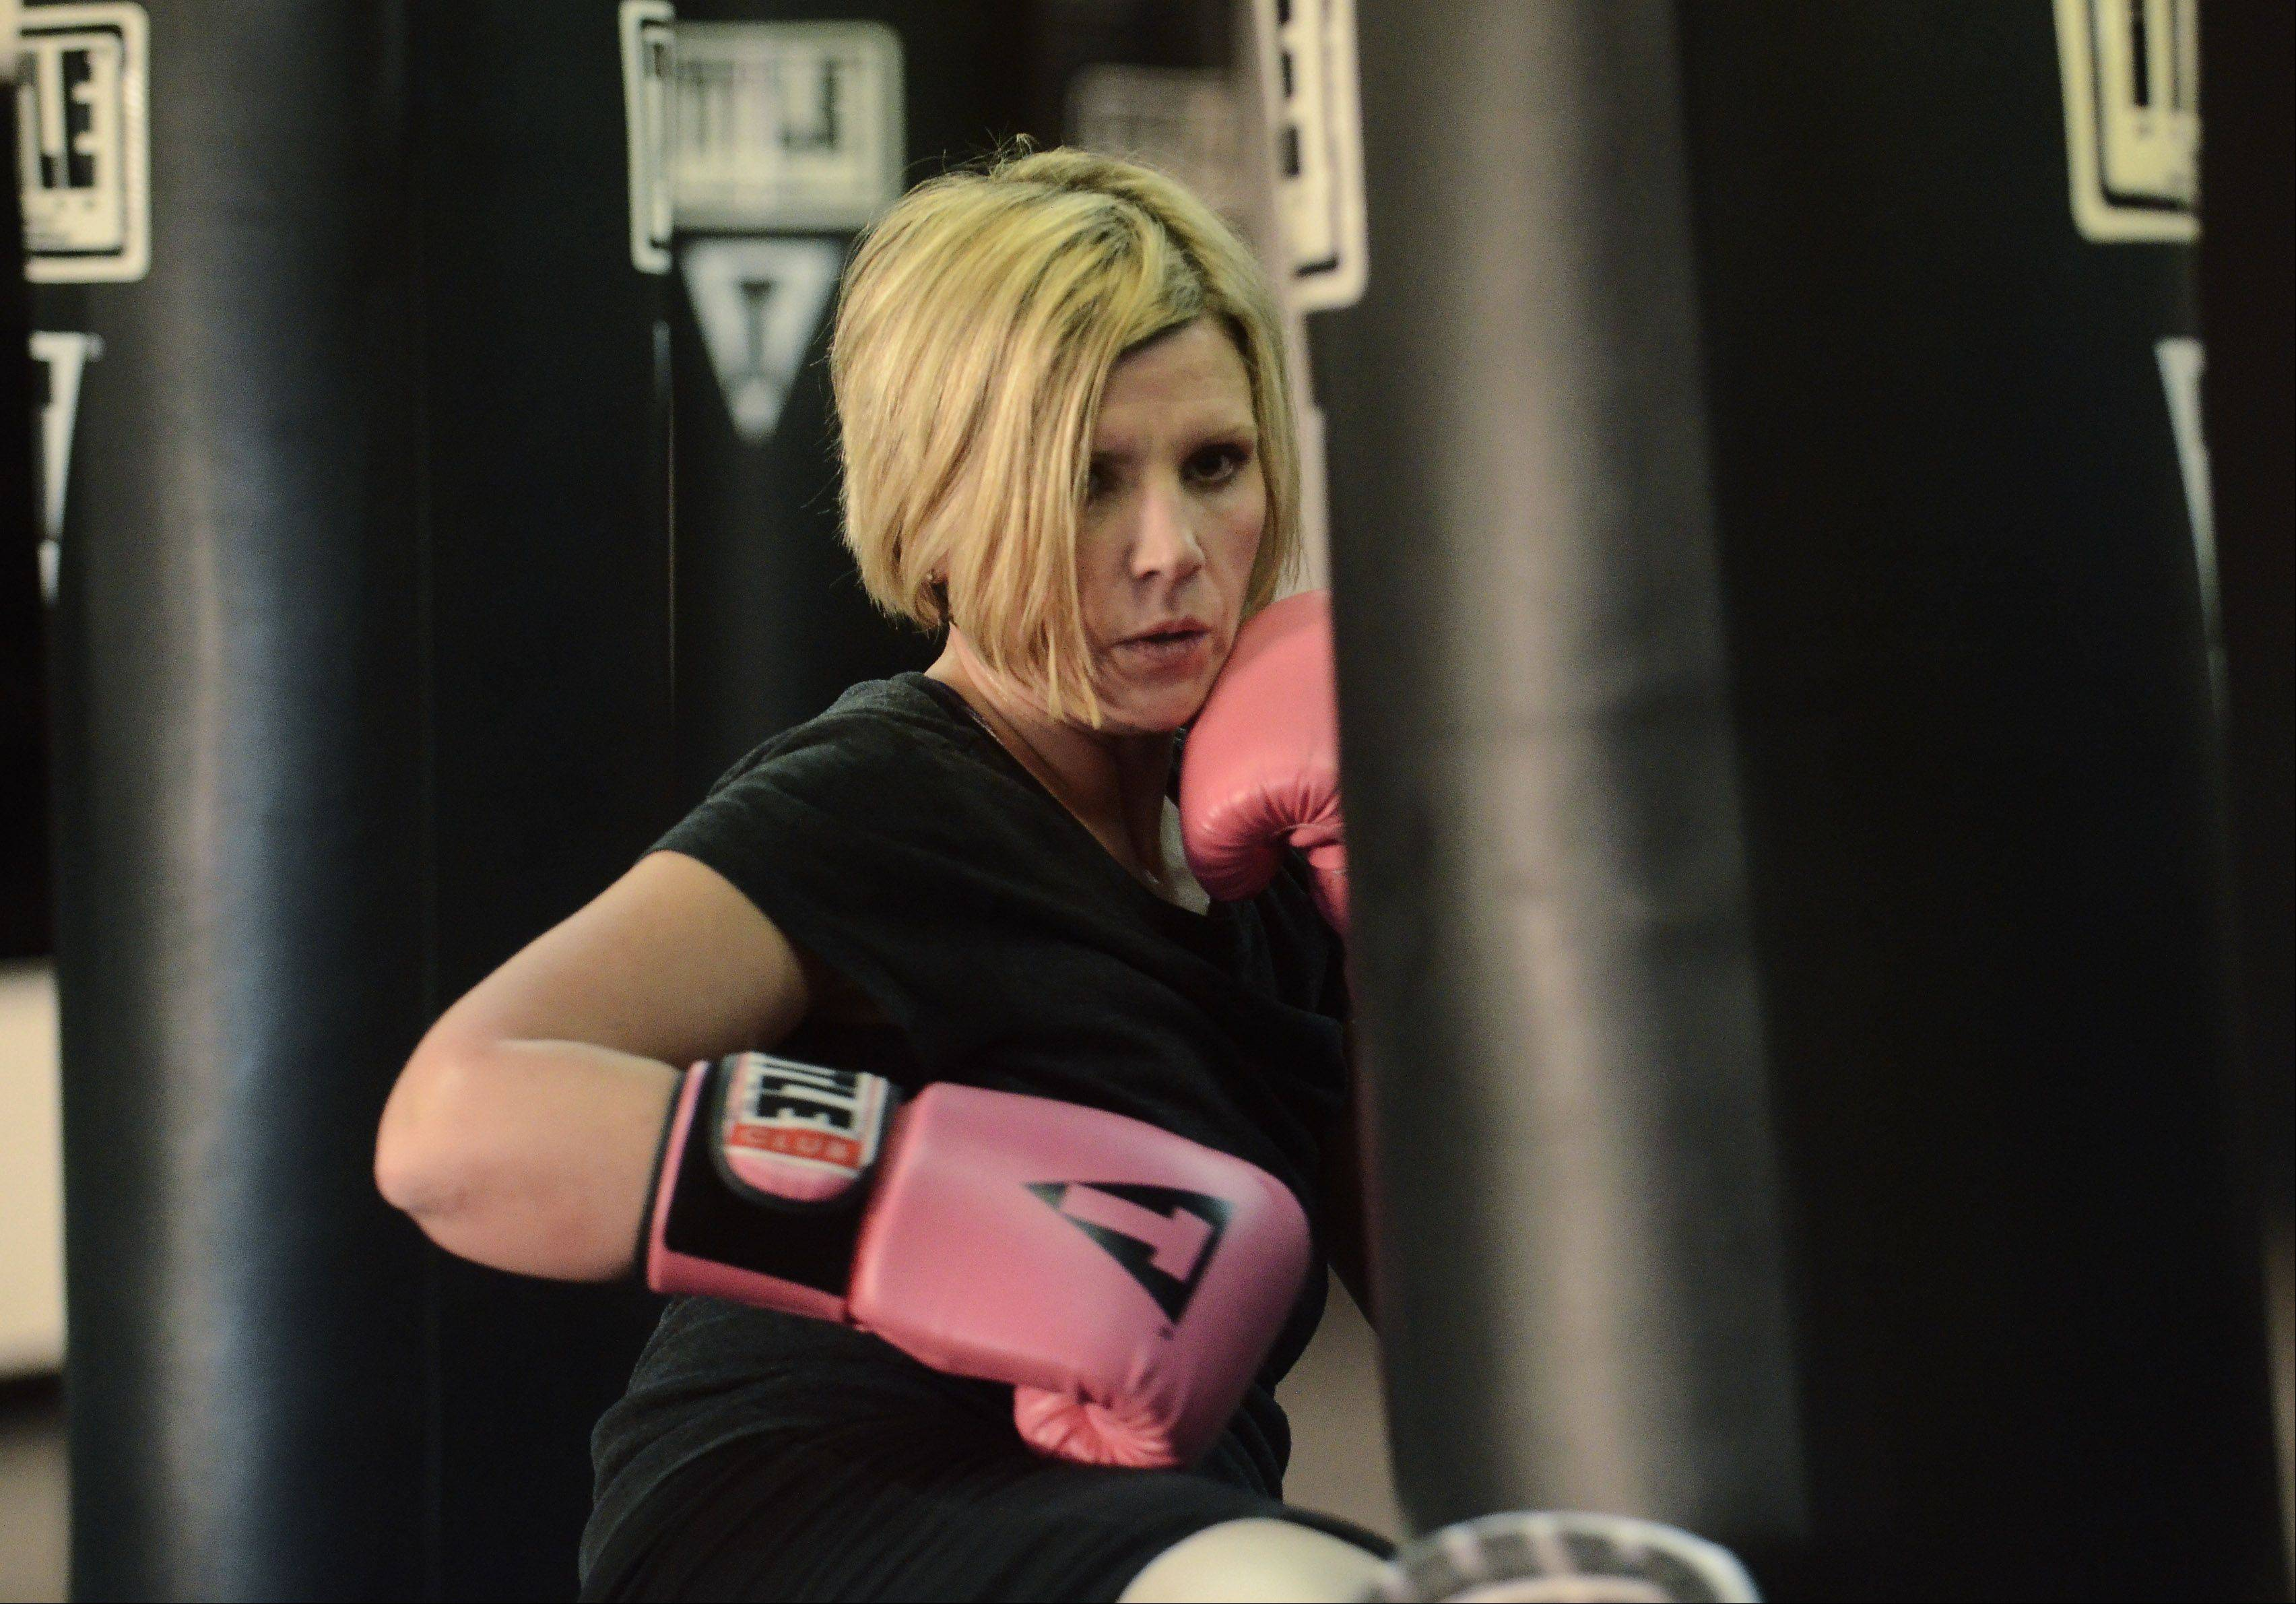 Erin Alsakhria works out during a Power Hour class at Title Boxing Club in Schaumburg.